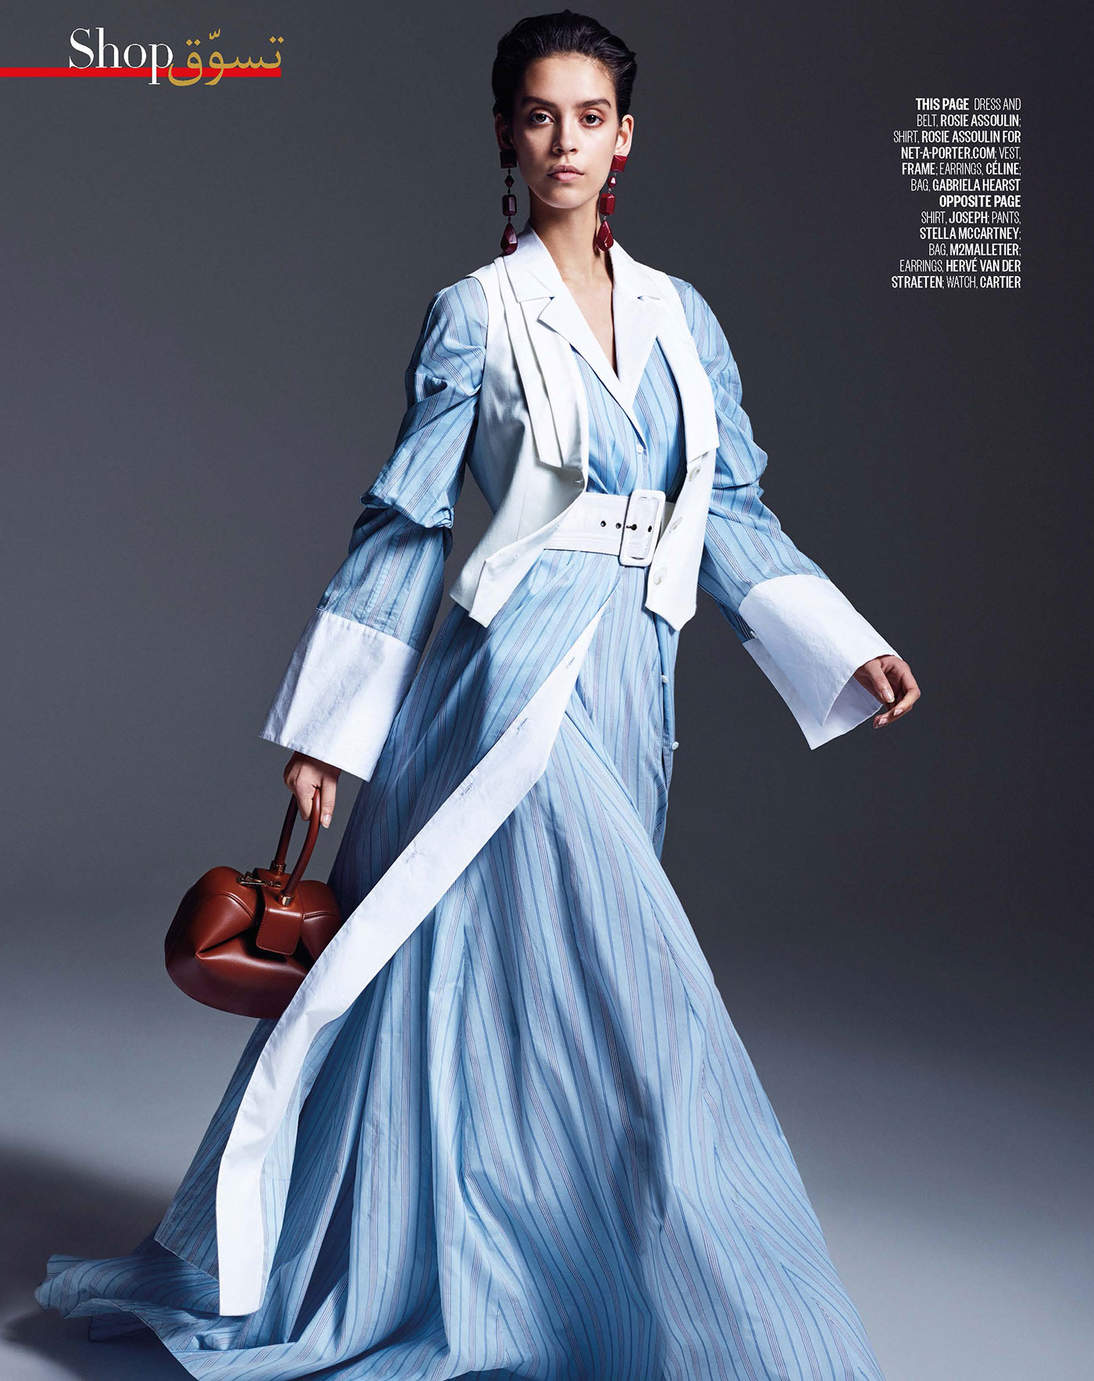 "From March 2017 ""Vogue Arabia"": Dress and belt, Rosie Assoulin; overcoat, Rosie Assoulin for Net-a-Porter.com; vest, Frame; earrings, Céline; bag, Gabriela Hearst. ""Vogue Arabia,"" March 2017, p. 74; Courtesy of ""Vogue Arabia"" and Marcin Tyszka, photographer"